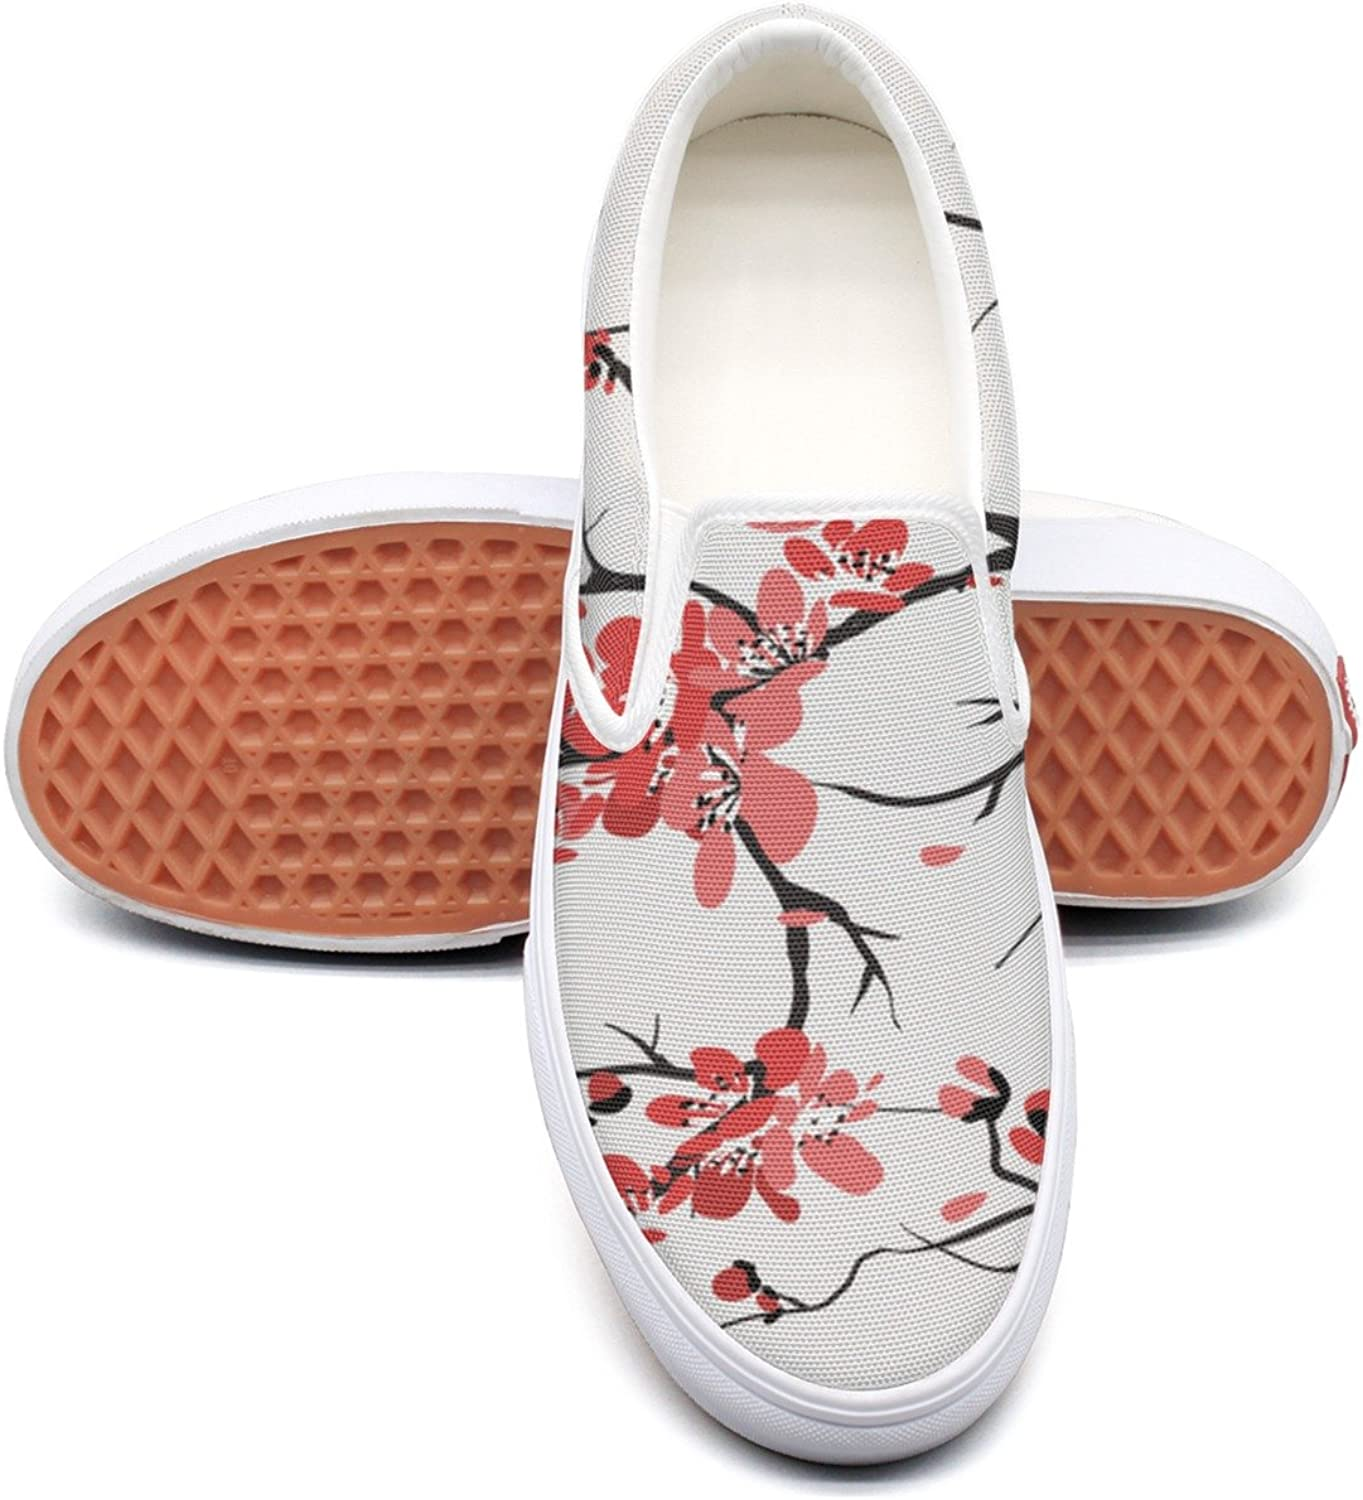 RegiDreae Canvas Slip On Sneakers for Women Paint Blossom Flower Fashion Sneaker